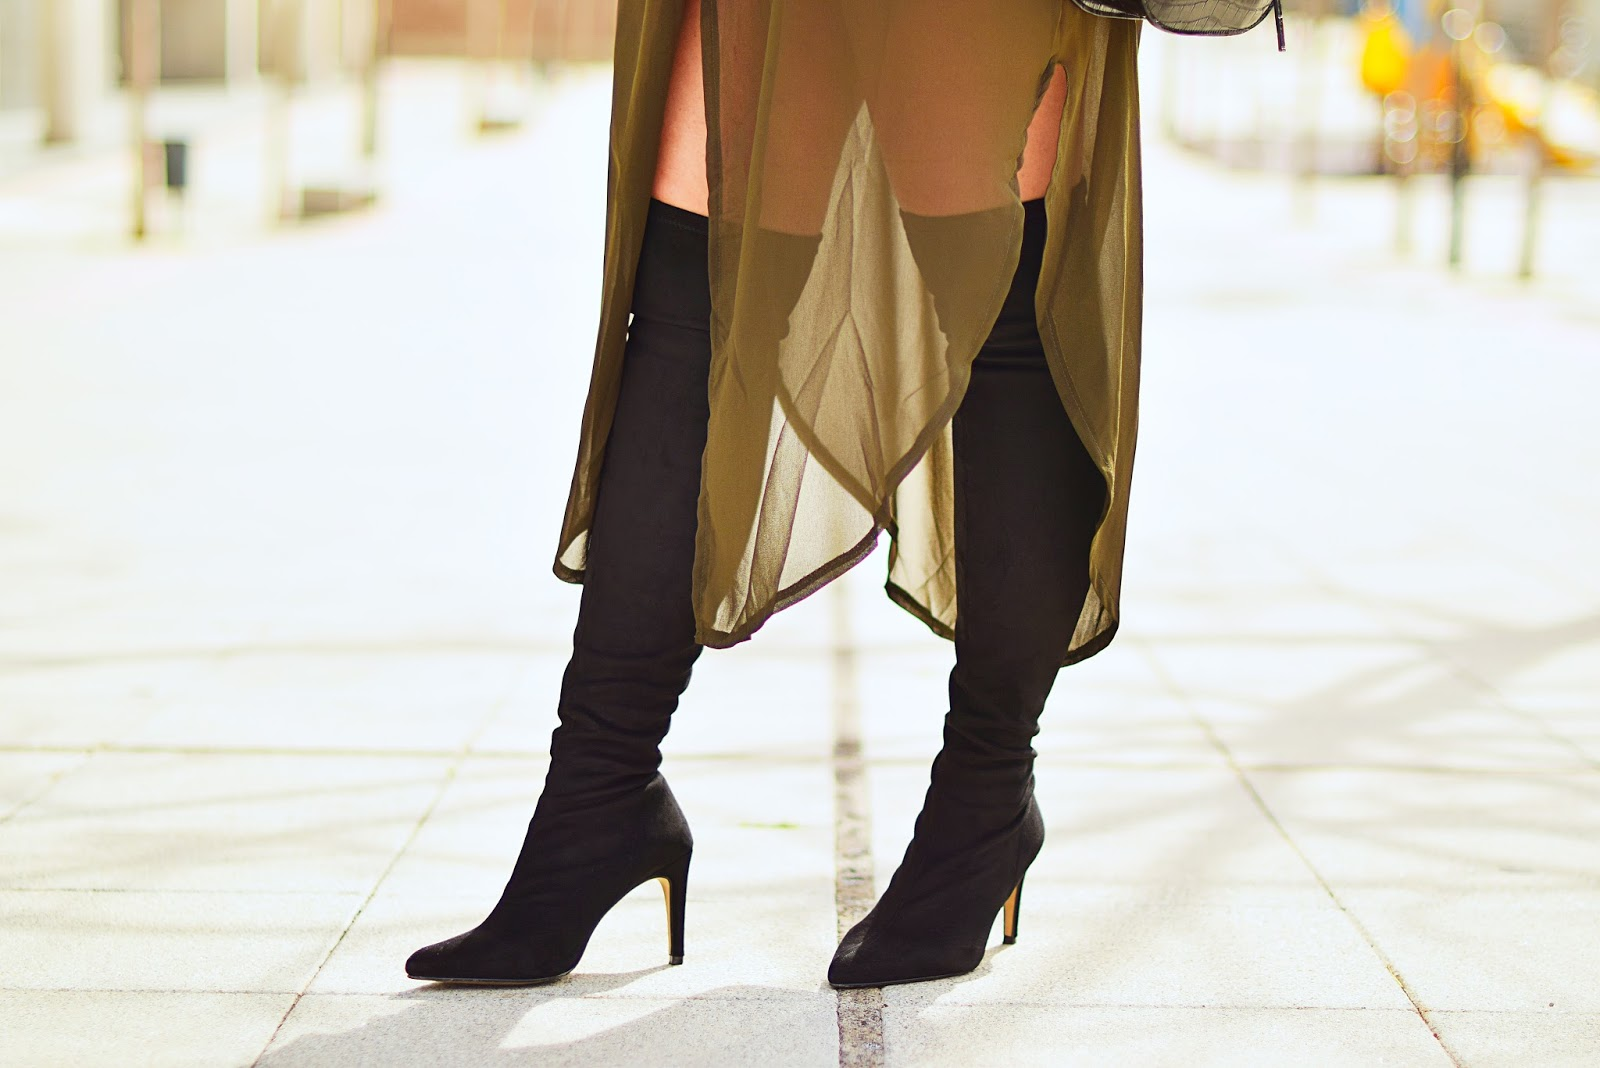 nery hdez, optical h , over the knee boots, MARYPAZ, dior, sammydress